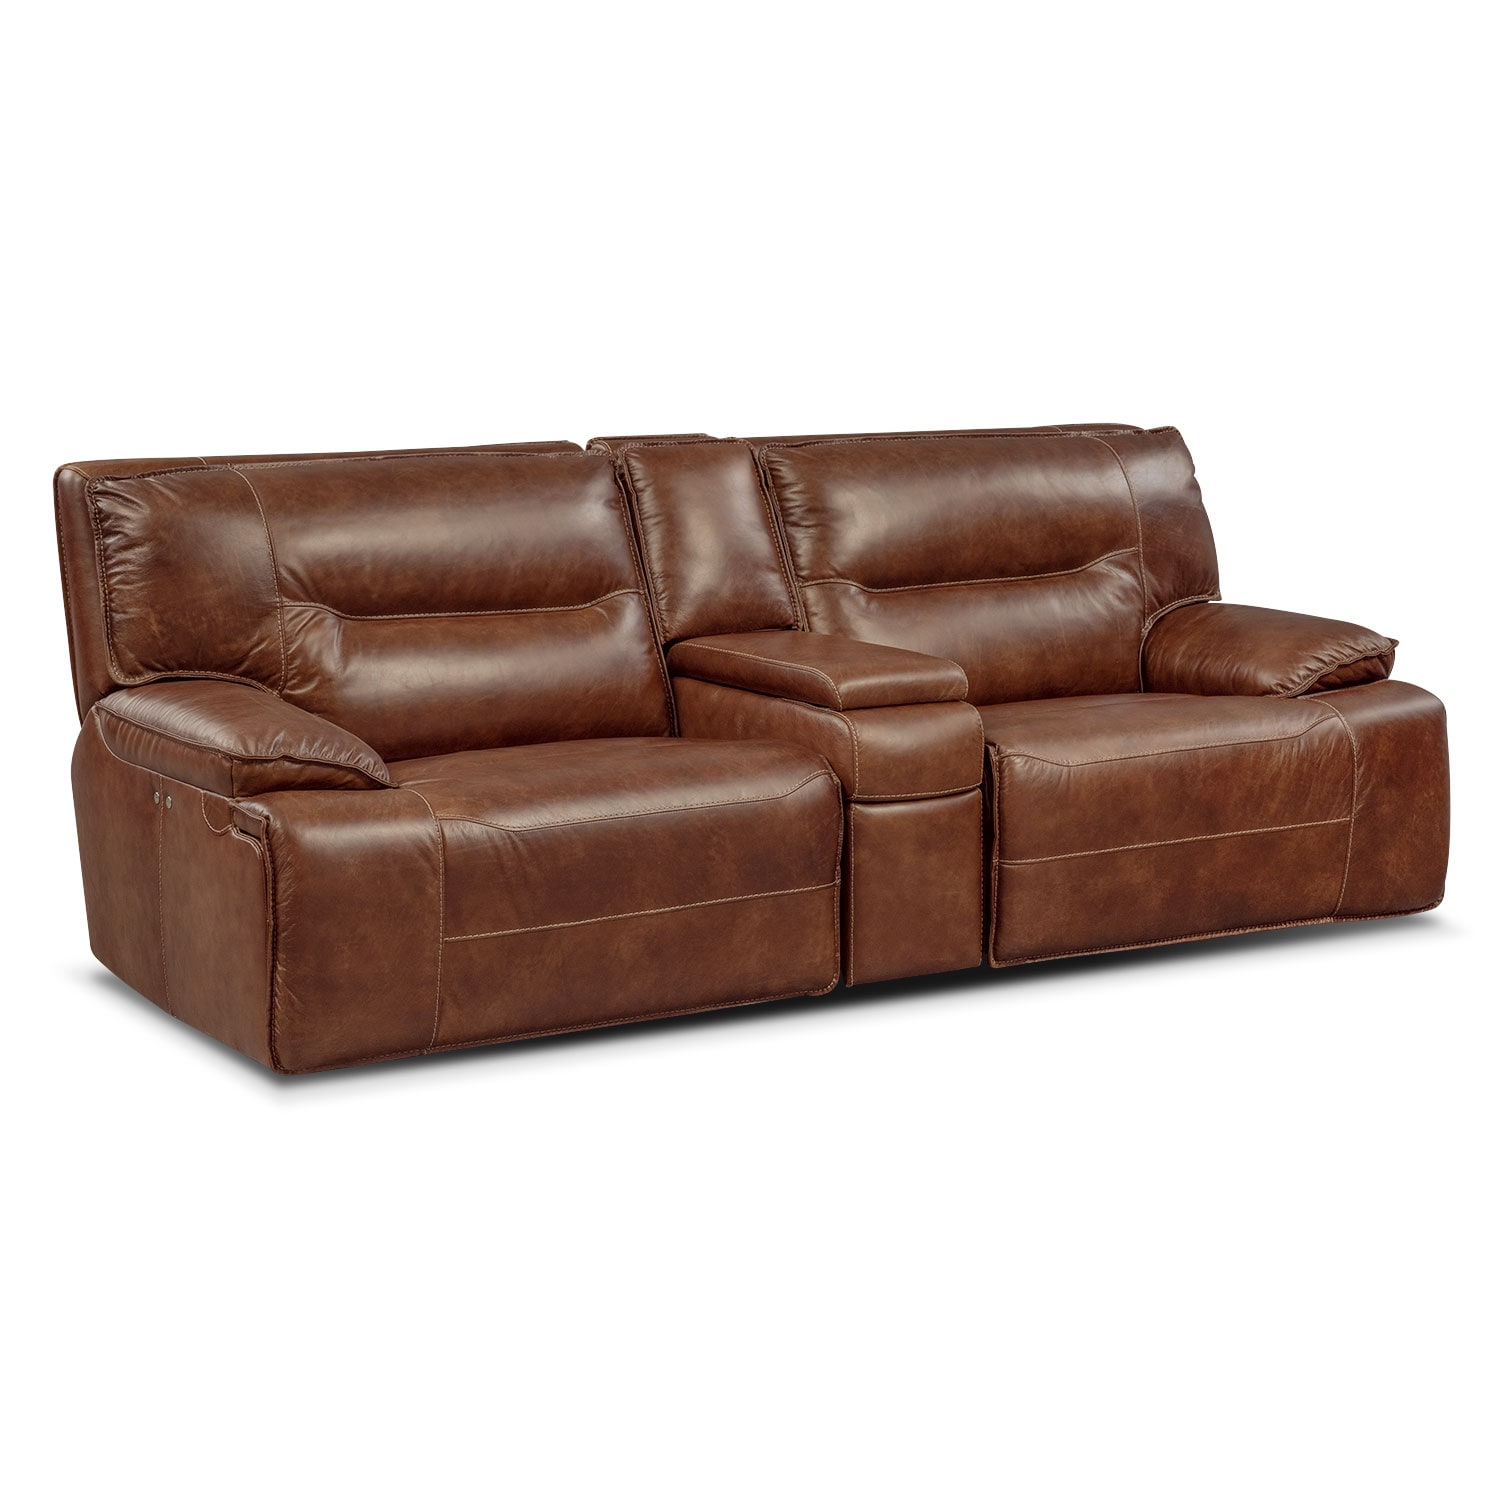 Living Room Furniture - Glenmont Brown 3 Pc. Power Reclining Sectional w/ Console